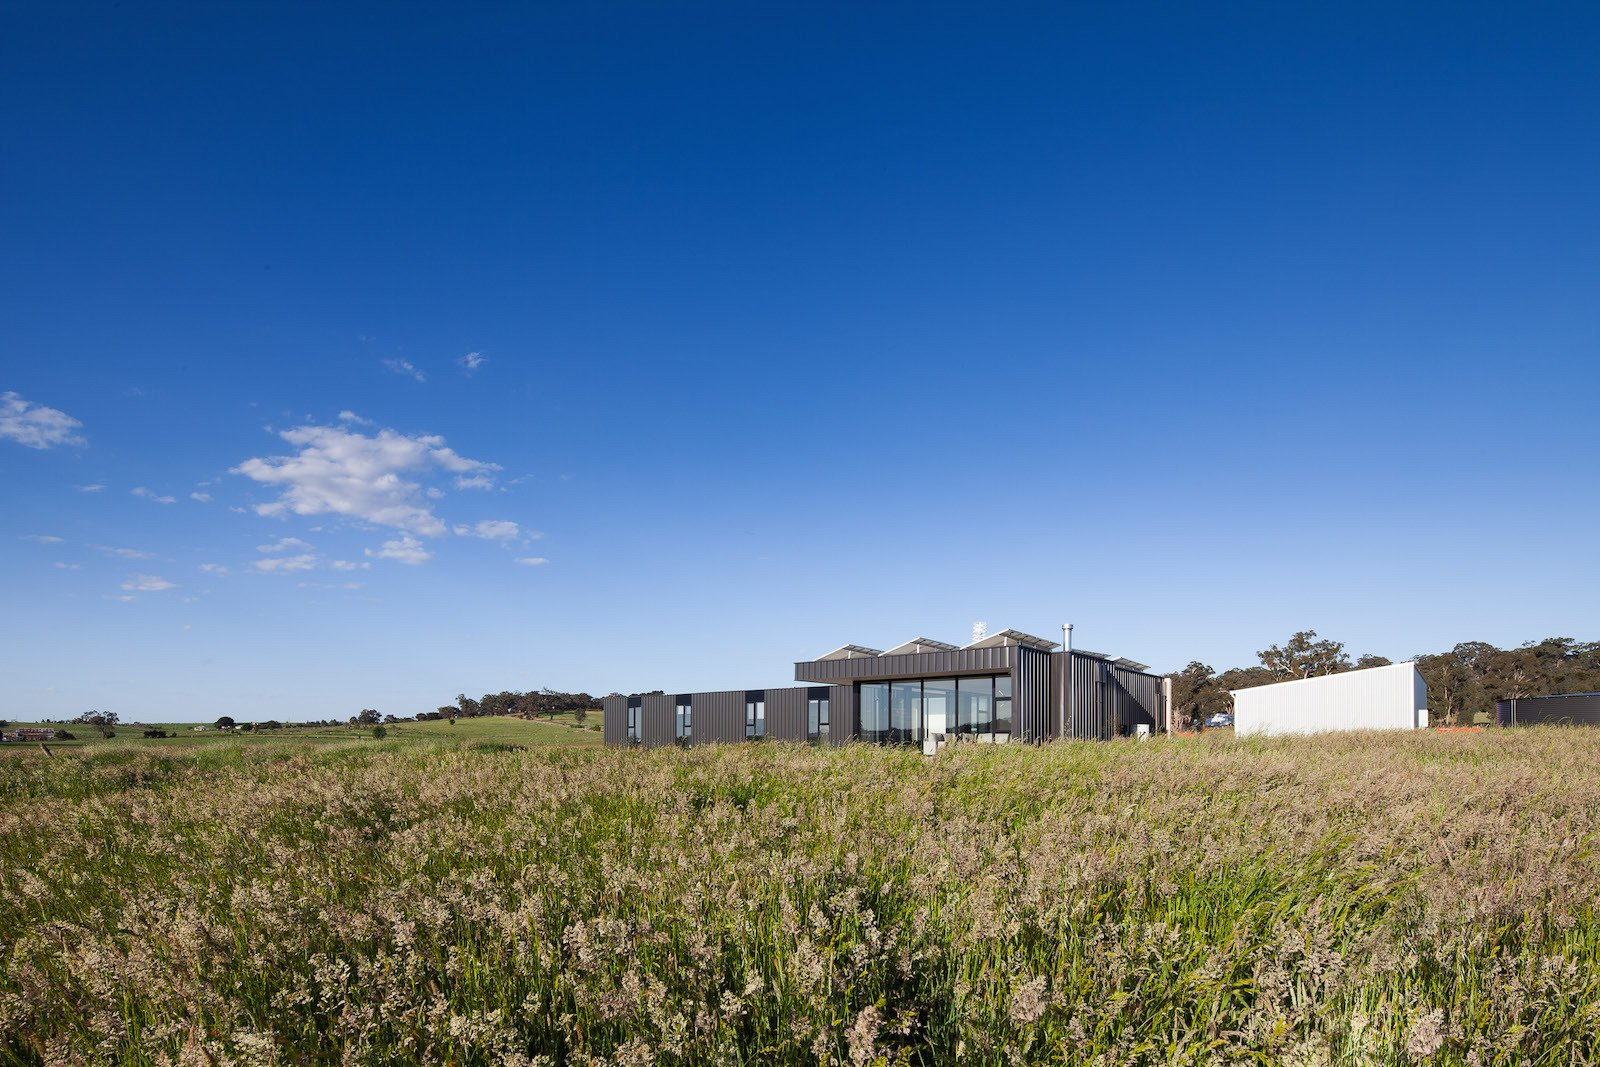 Outdoor, Grass, and Field  Photo 4 of 10 in Two Families Embrace Off-Grid Living in This Sustainable Prefab Home